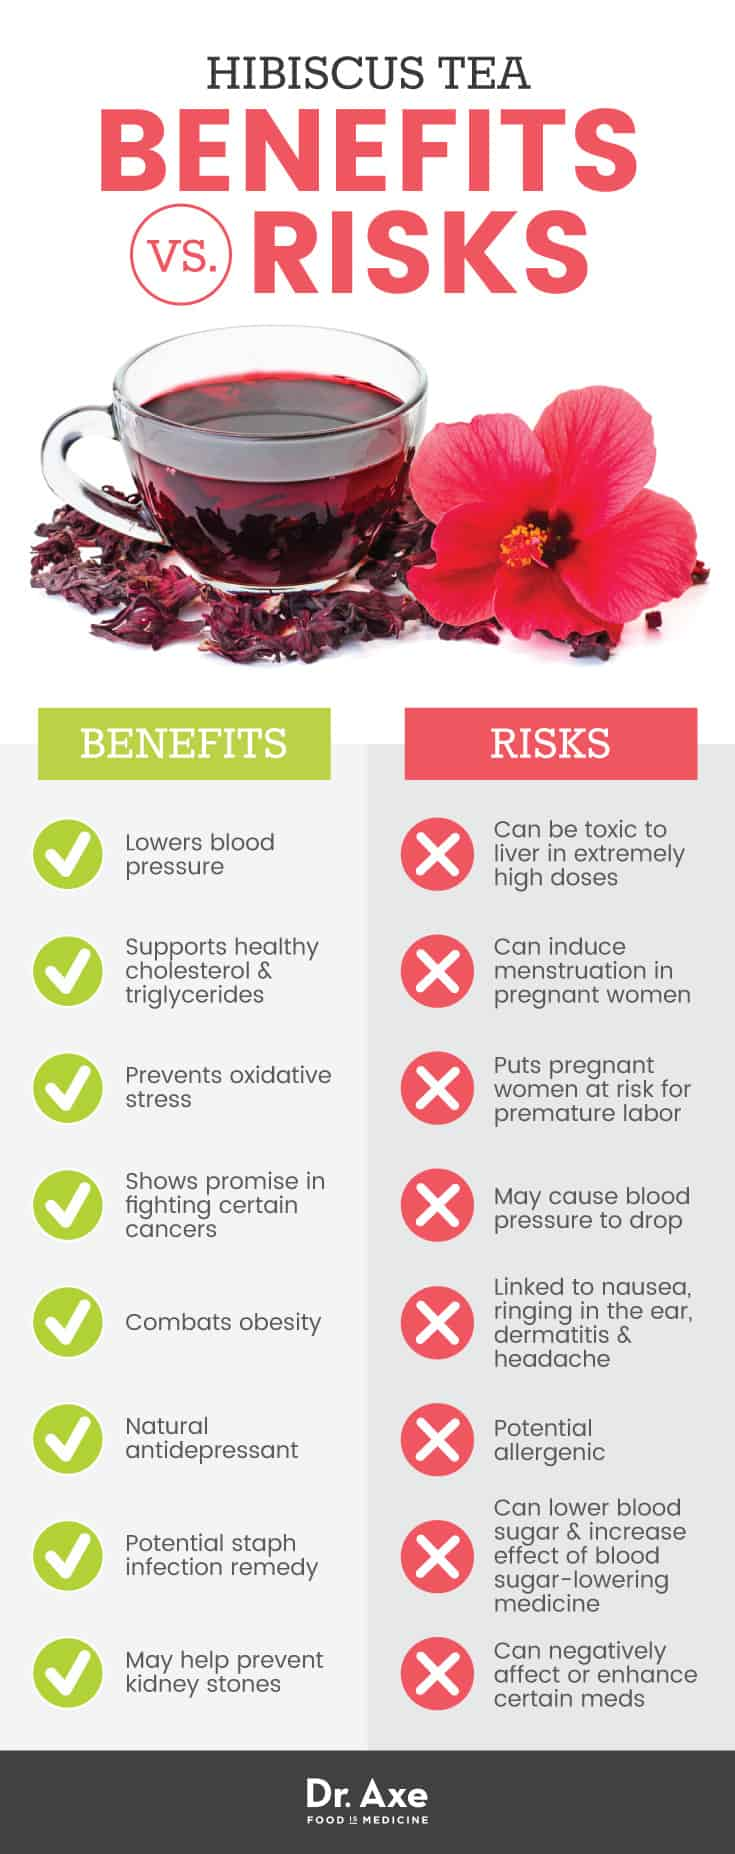 Hibiscus tea the antioxidant therapeutic agent you should be hibiscus tea benefits vs risks dr axe izmirmasajfo Choice Image